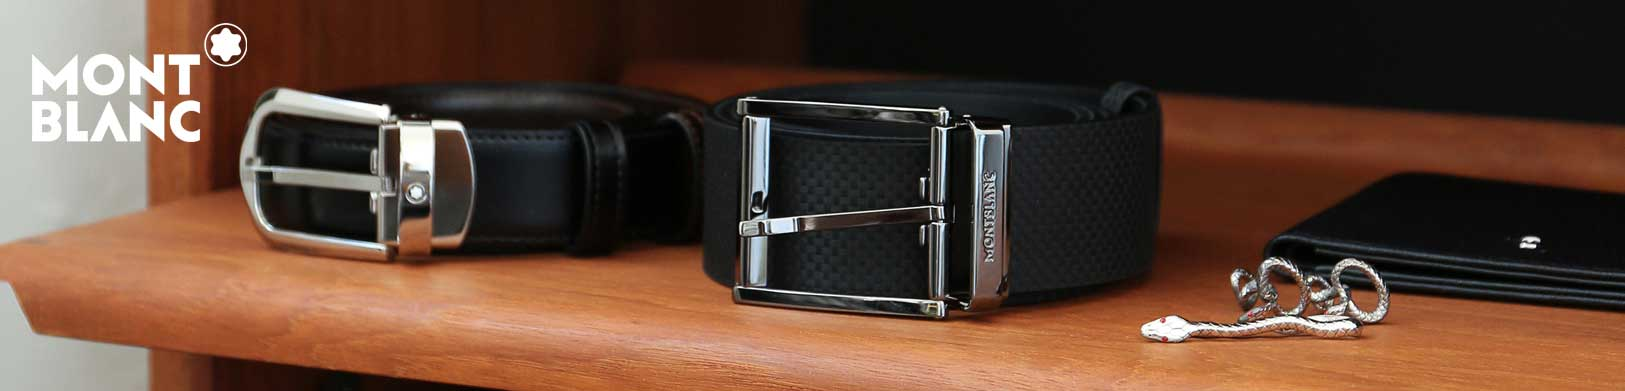 Montblanc Leather